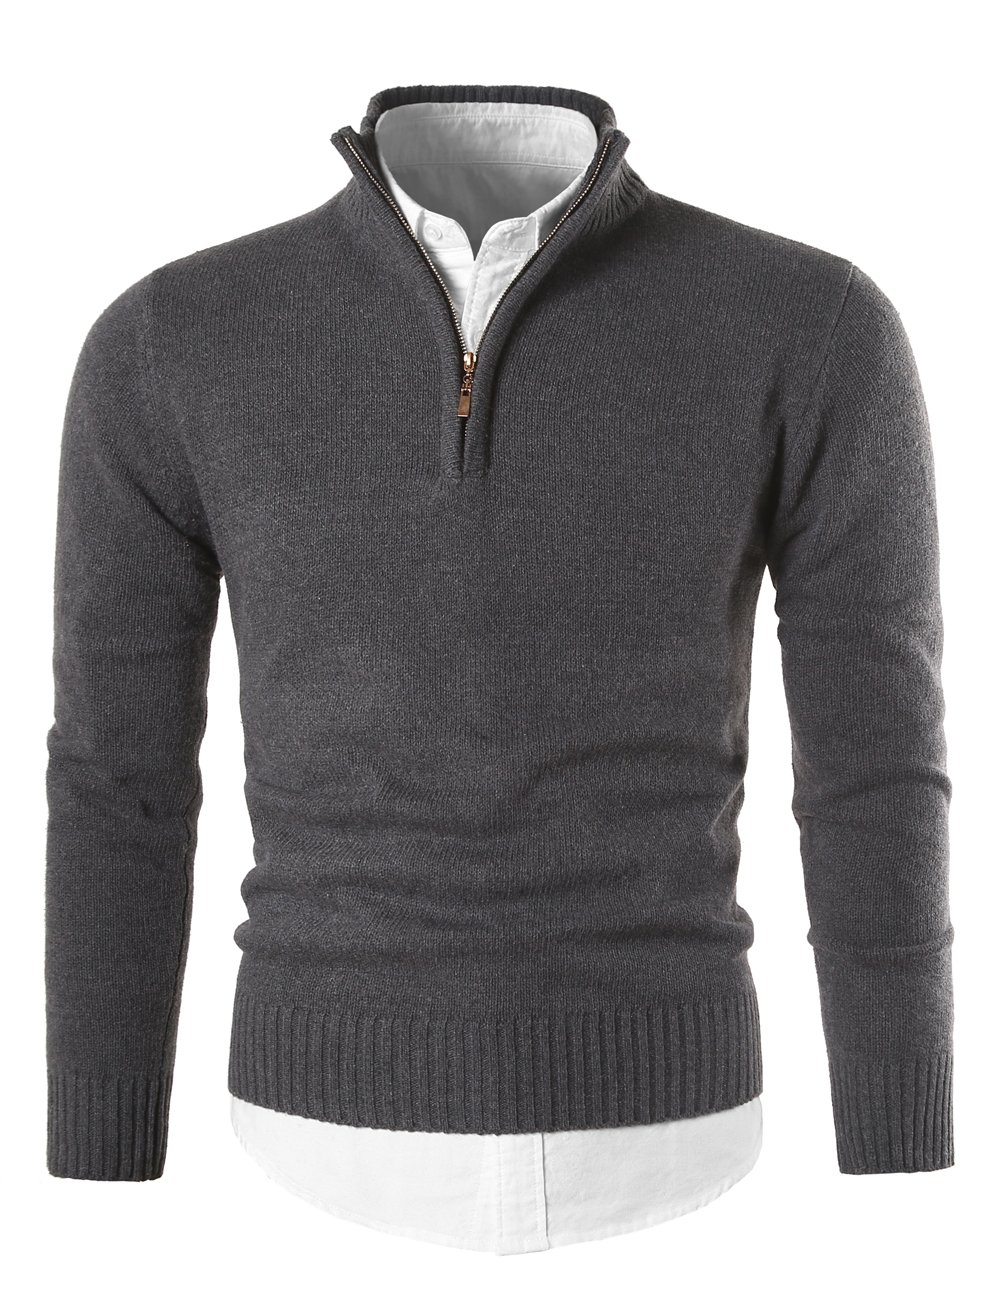 MIEDEON Mens Slim Fit Zip Up Mock Neck Polo Sweater Casual Long Sleeve Sweater and Pullover Sweaters with Ribbing Edge (Dark Grey, 2XL)